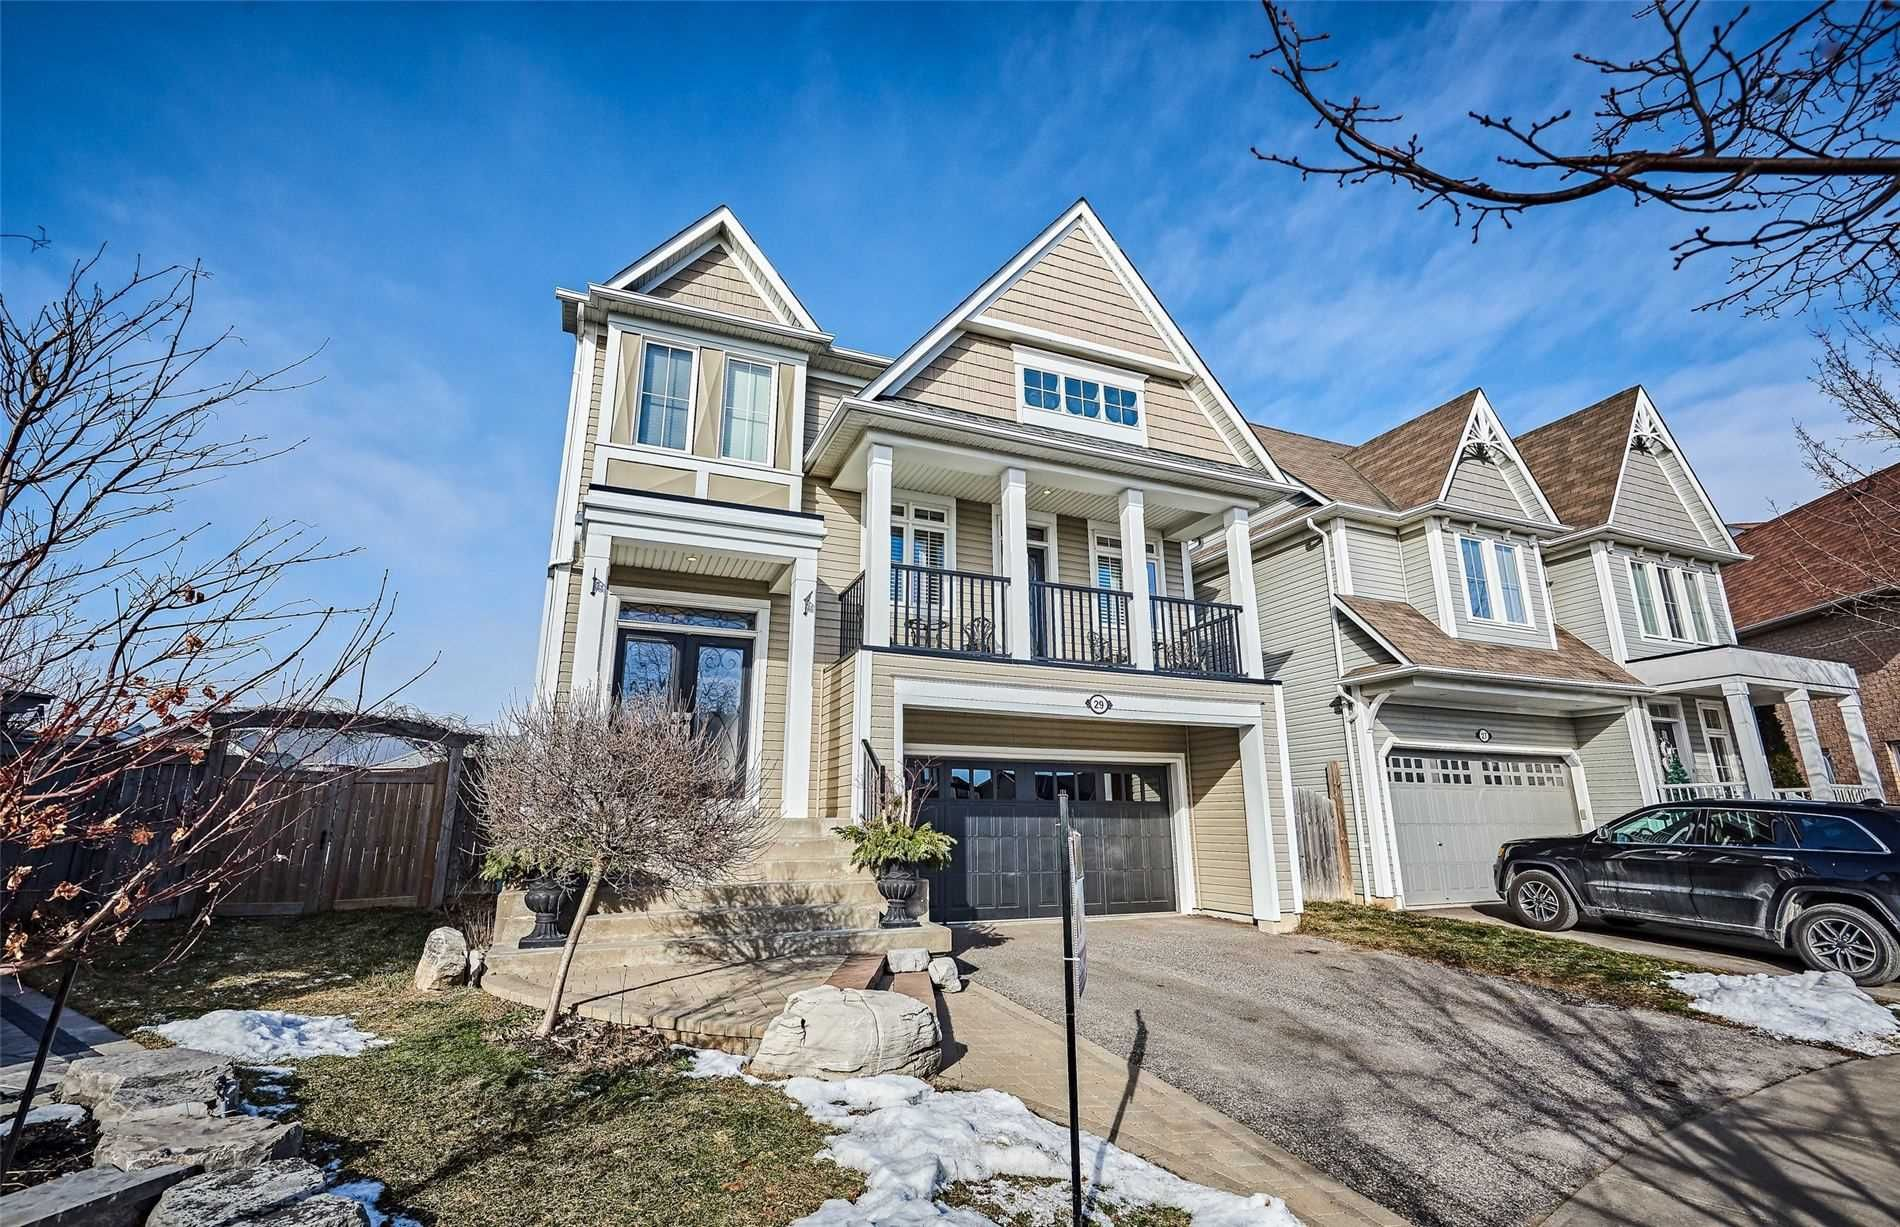 Main Photo: 29 Eastgate Circle in Whitby: Brooklin House (2-Storey) for sale : MLS®# E5090105